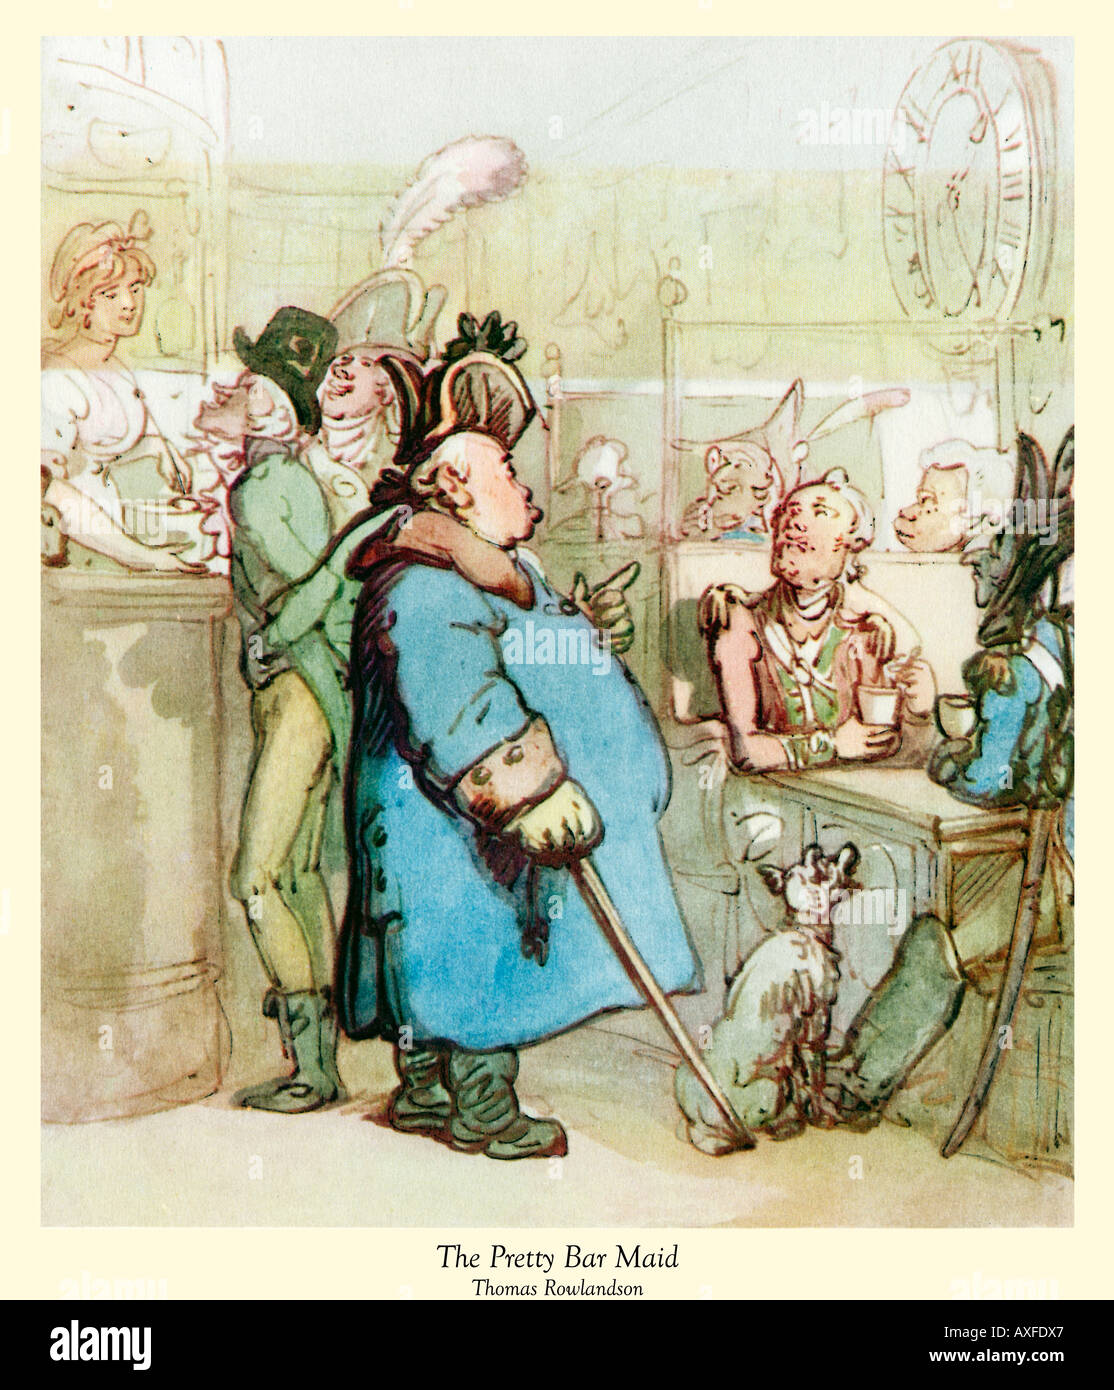 The Pretty Bar Maid Georgian caricature of the habitues of a tavern by the master illustrator Thomas Rowlandson - Stock Image